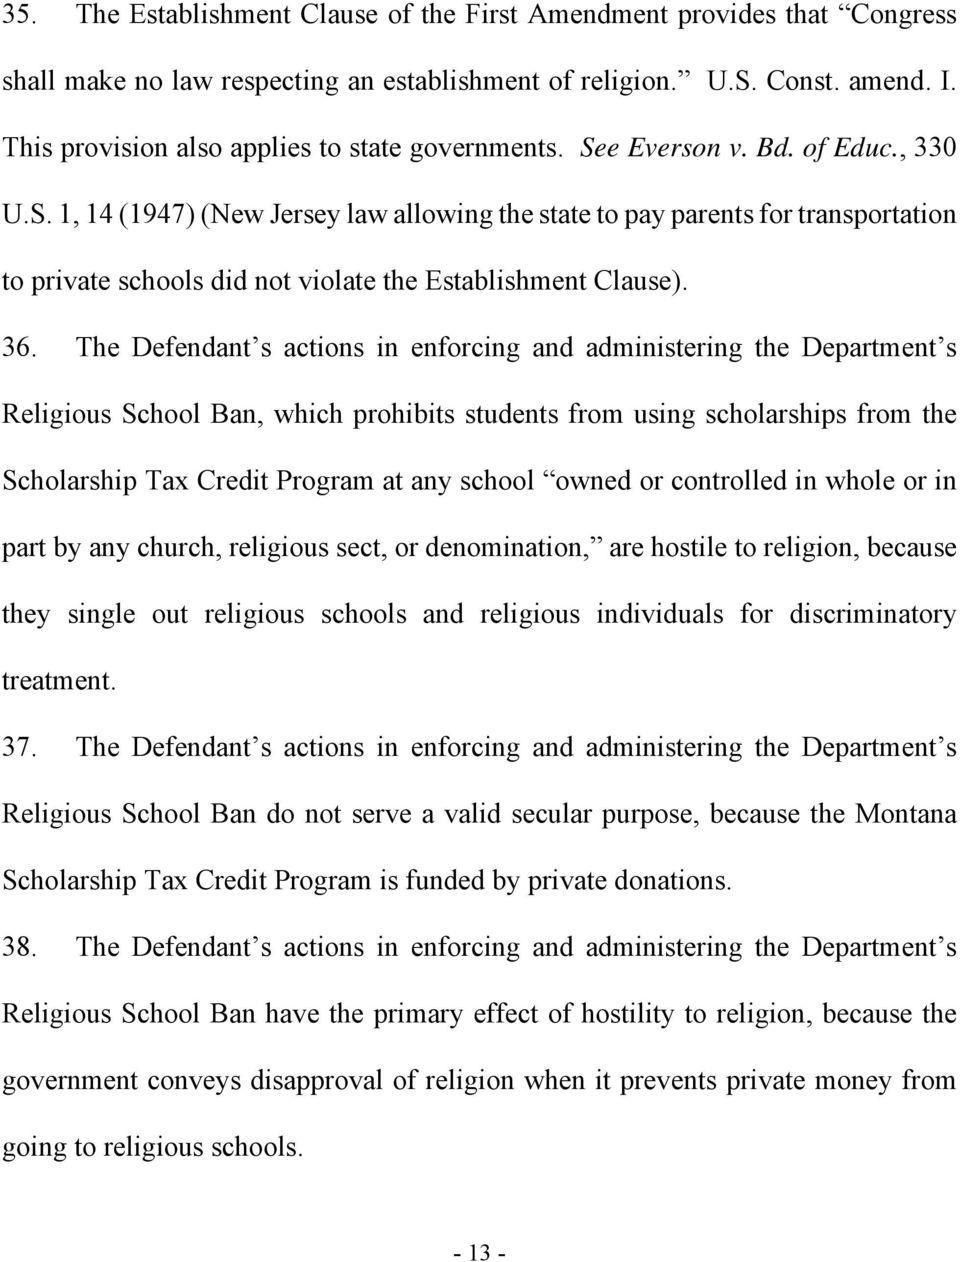 36. The Defendant s actions in enforcing and administering the Department s Religious School Ban, which prohibits students from using scholarships from the Scholarship Tax Credit Program at any